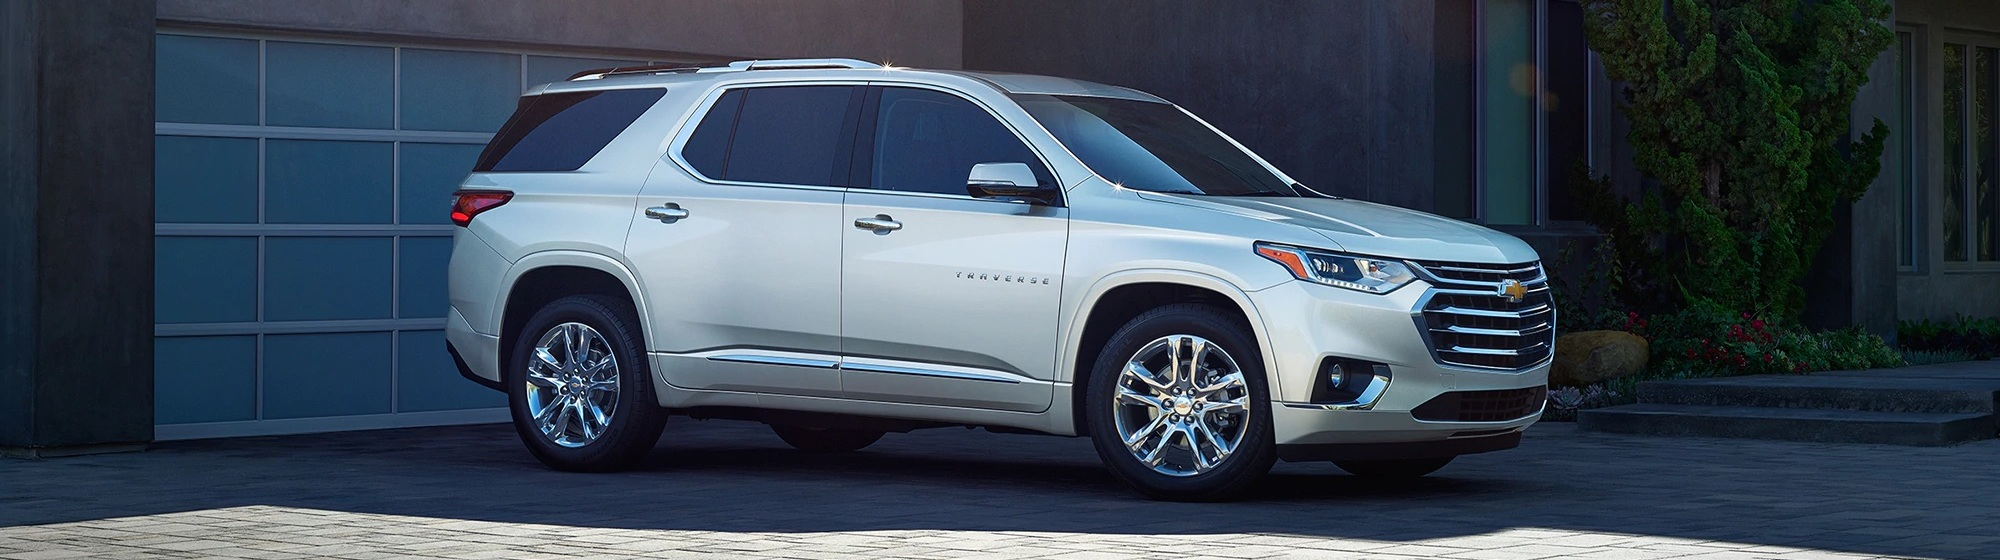 Chevrolet Traverse 2020 a la venta cerca de North County, CA